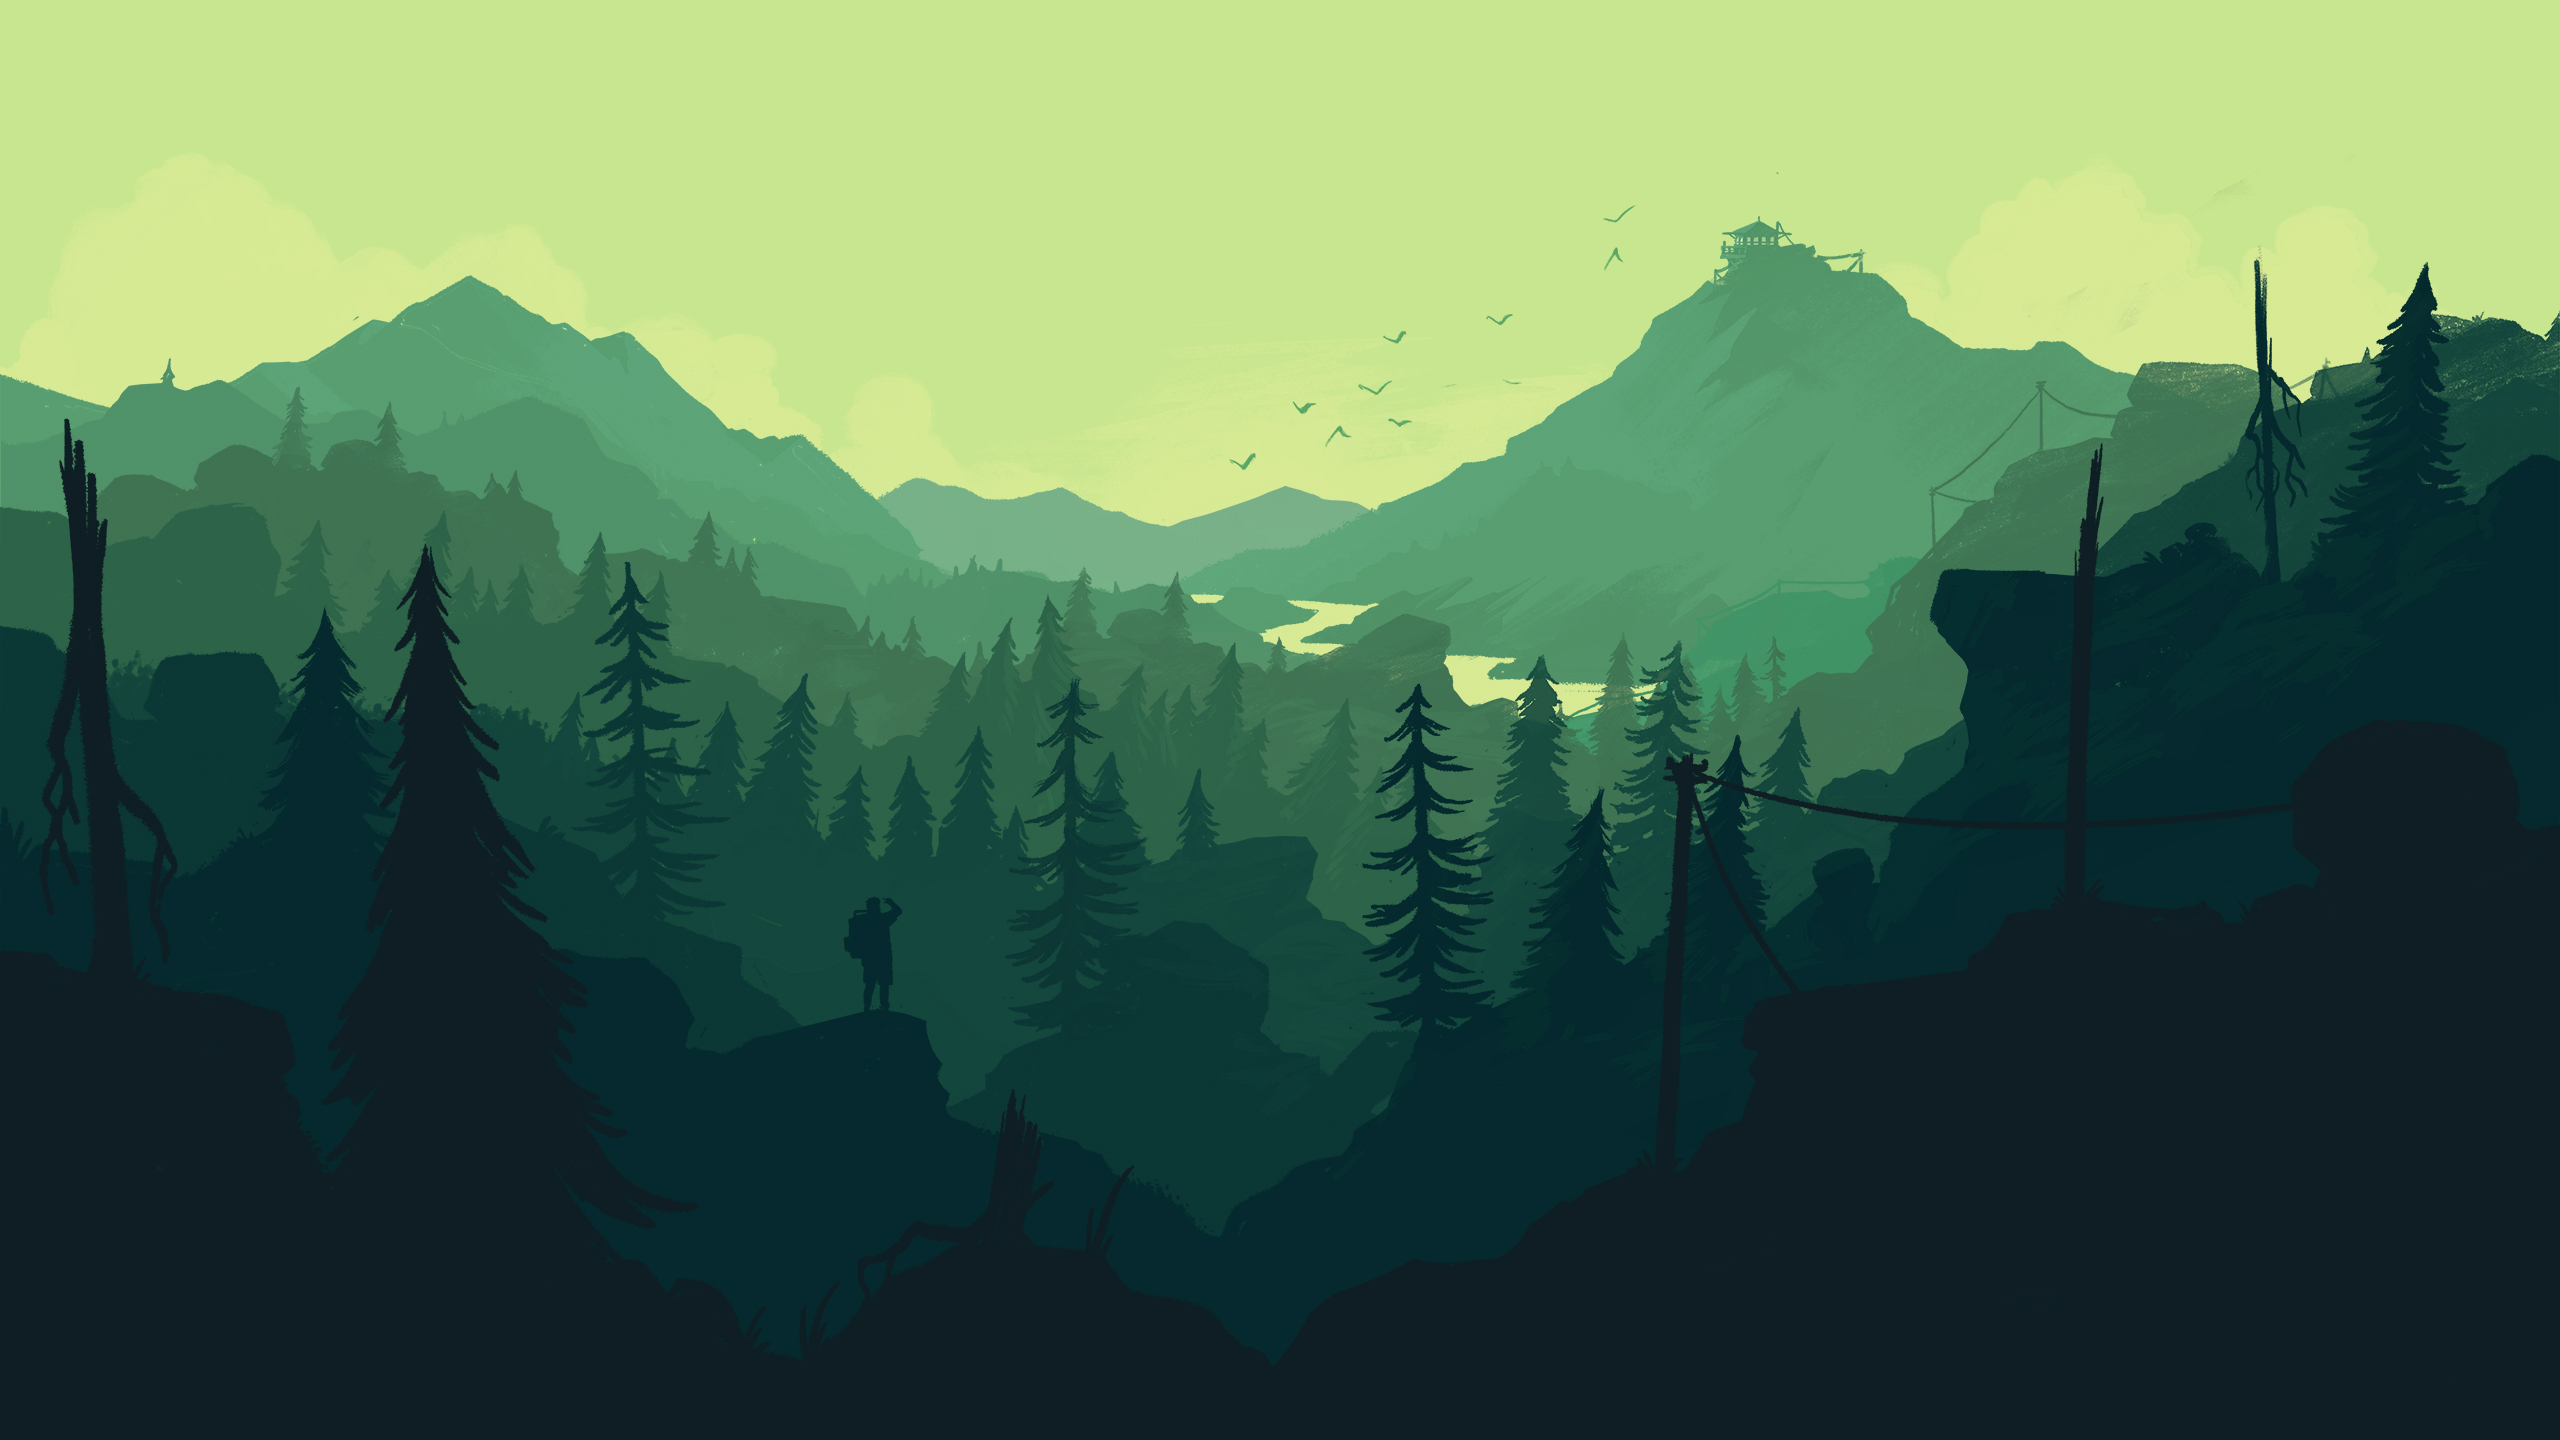 25 Best Ipad Wallpaper Hd Free: Firewatch Wallpaper For IPhone And Desktop